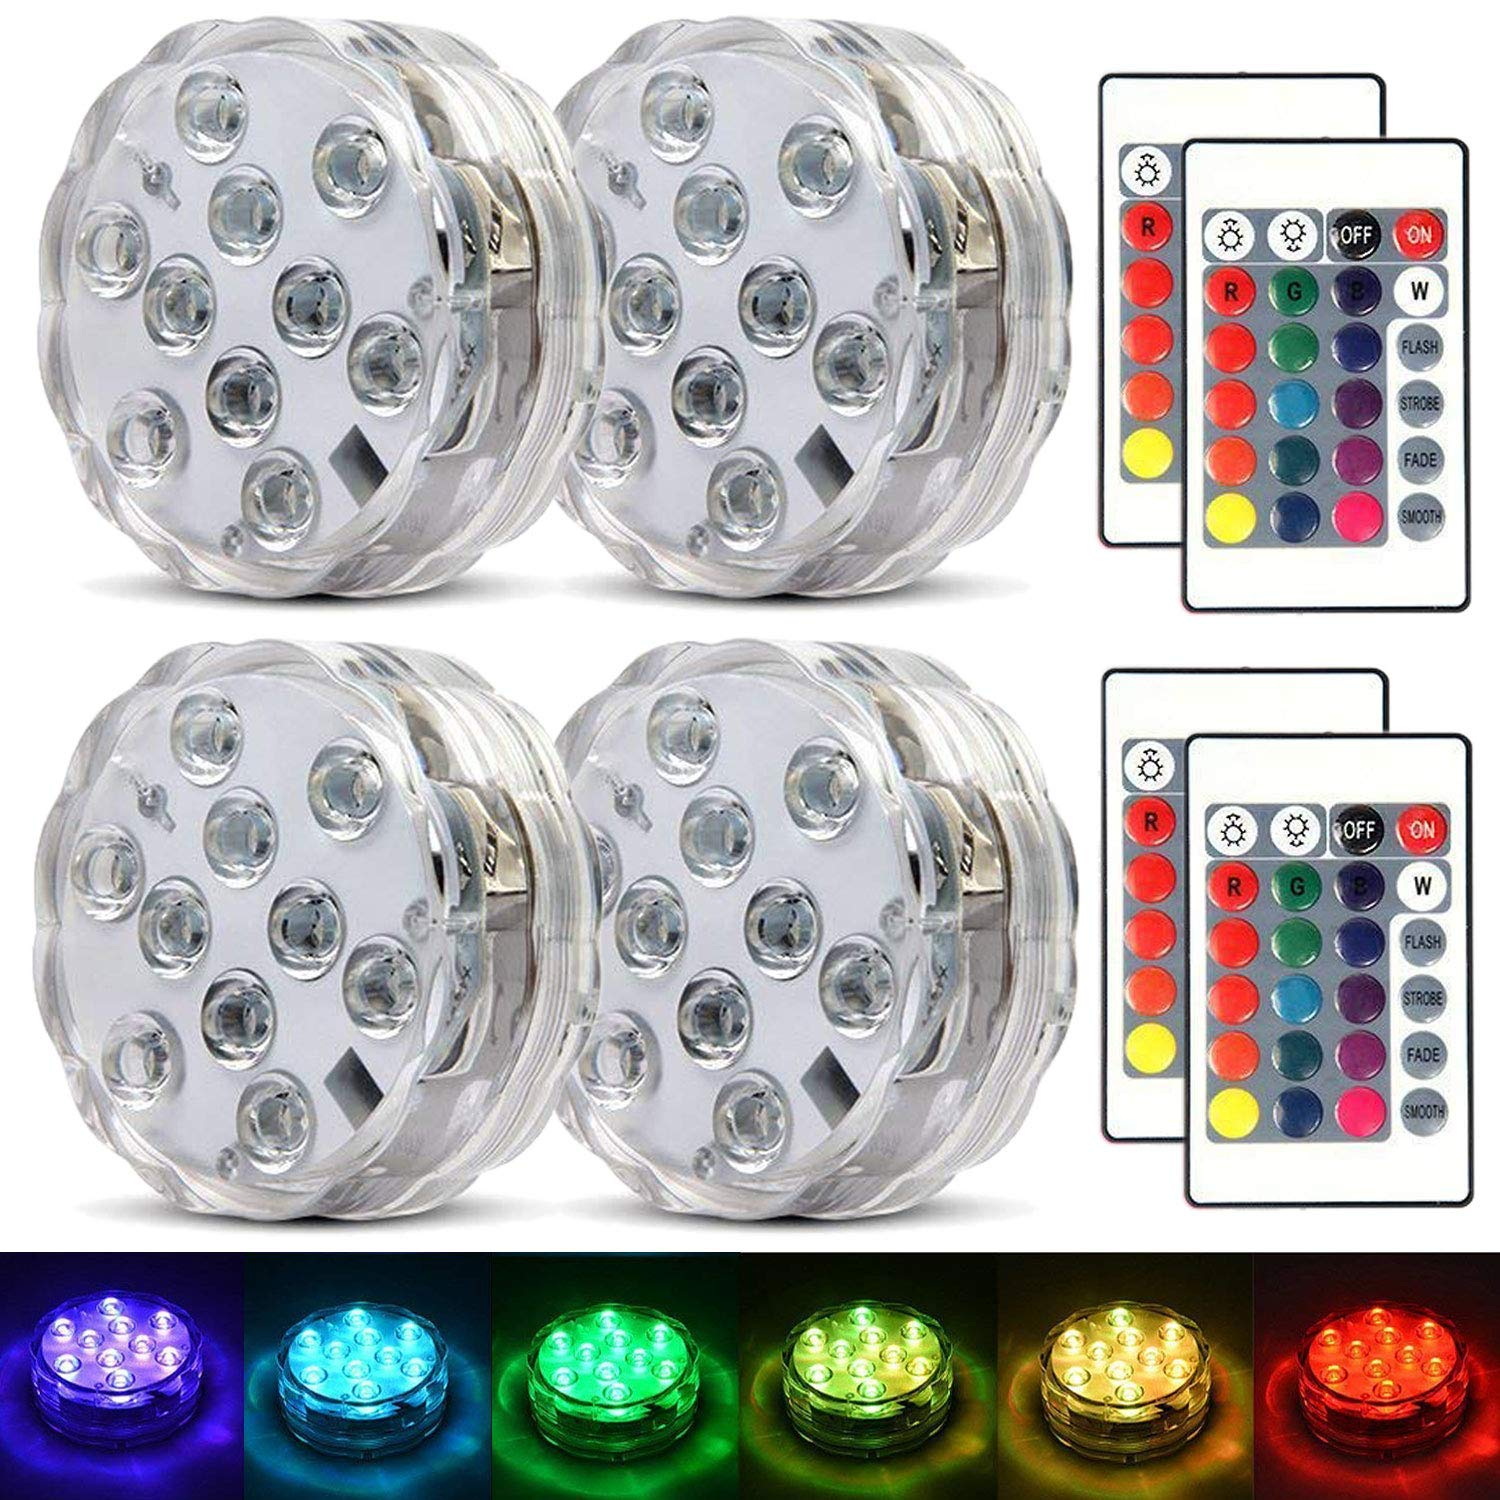 Submersible Led Lights Waterproof Multi-color Battery Remote Control, Party Perfect Decorative Lighting, Suitable for Aquarium Lights, Christmas, Halloween, Etc. IP68 Waterproof Rating (4Pack) by MOONBROOK